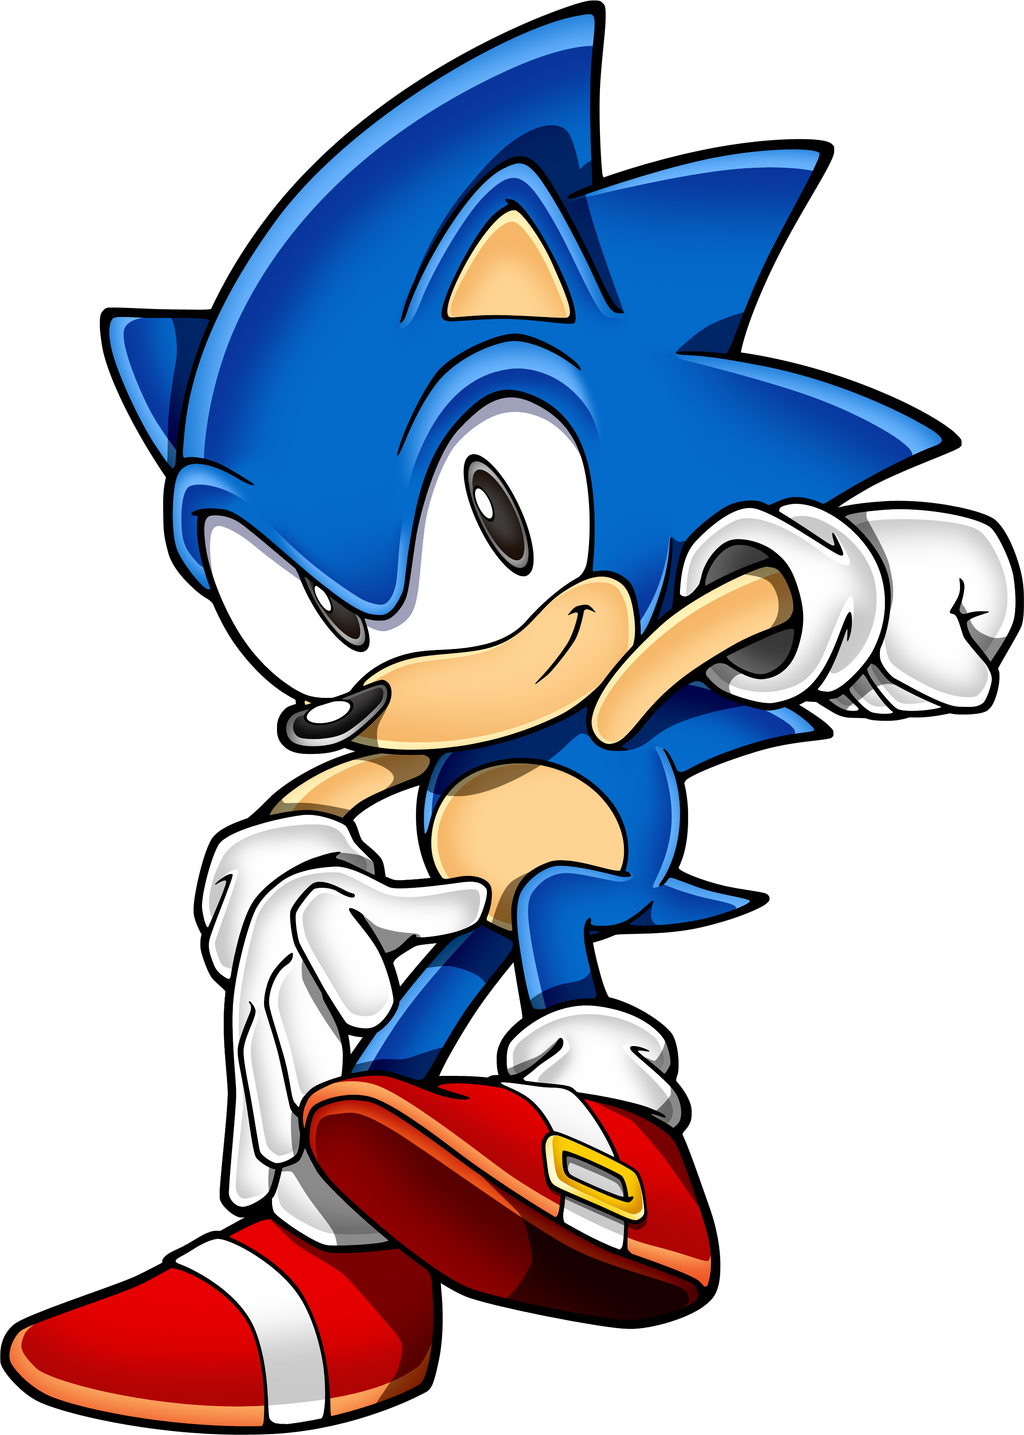 classic sonic by ketrindarkdragon on deviantart